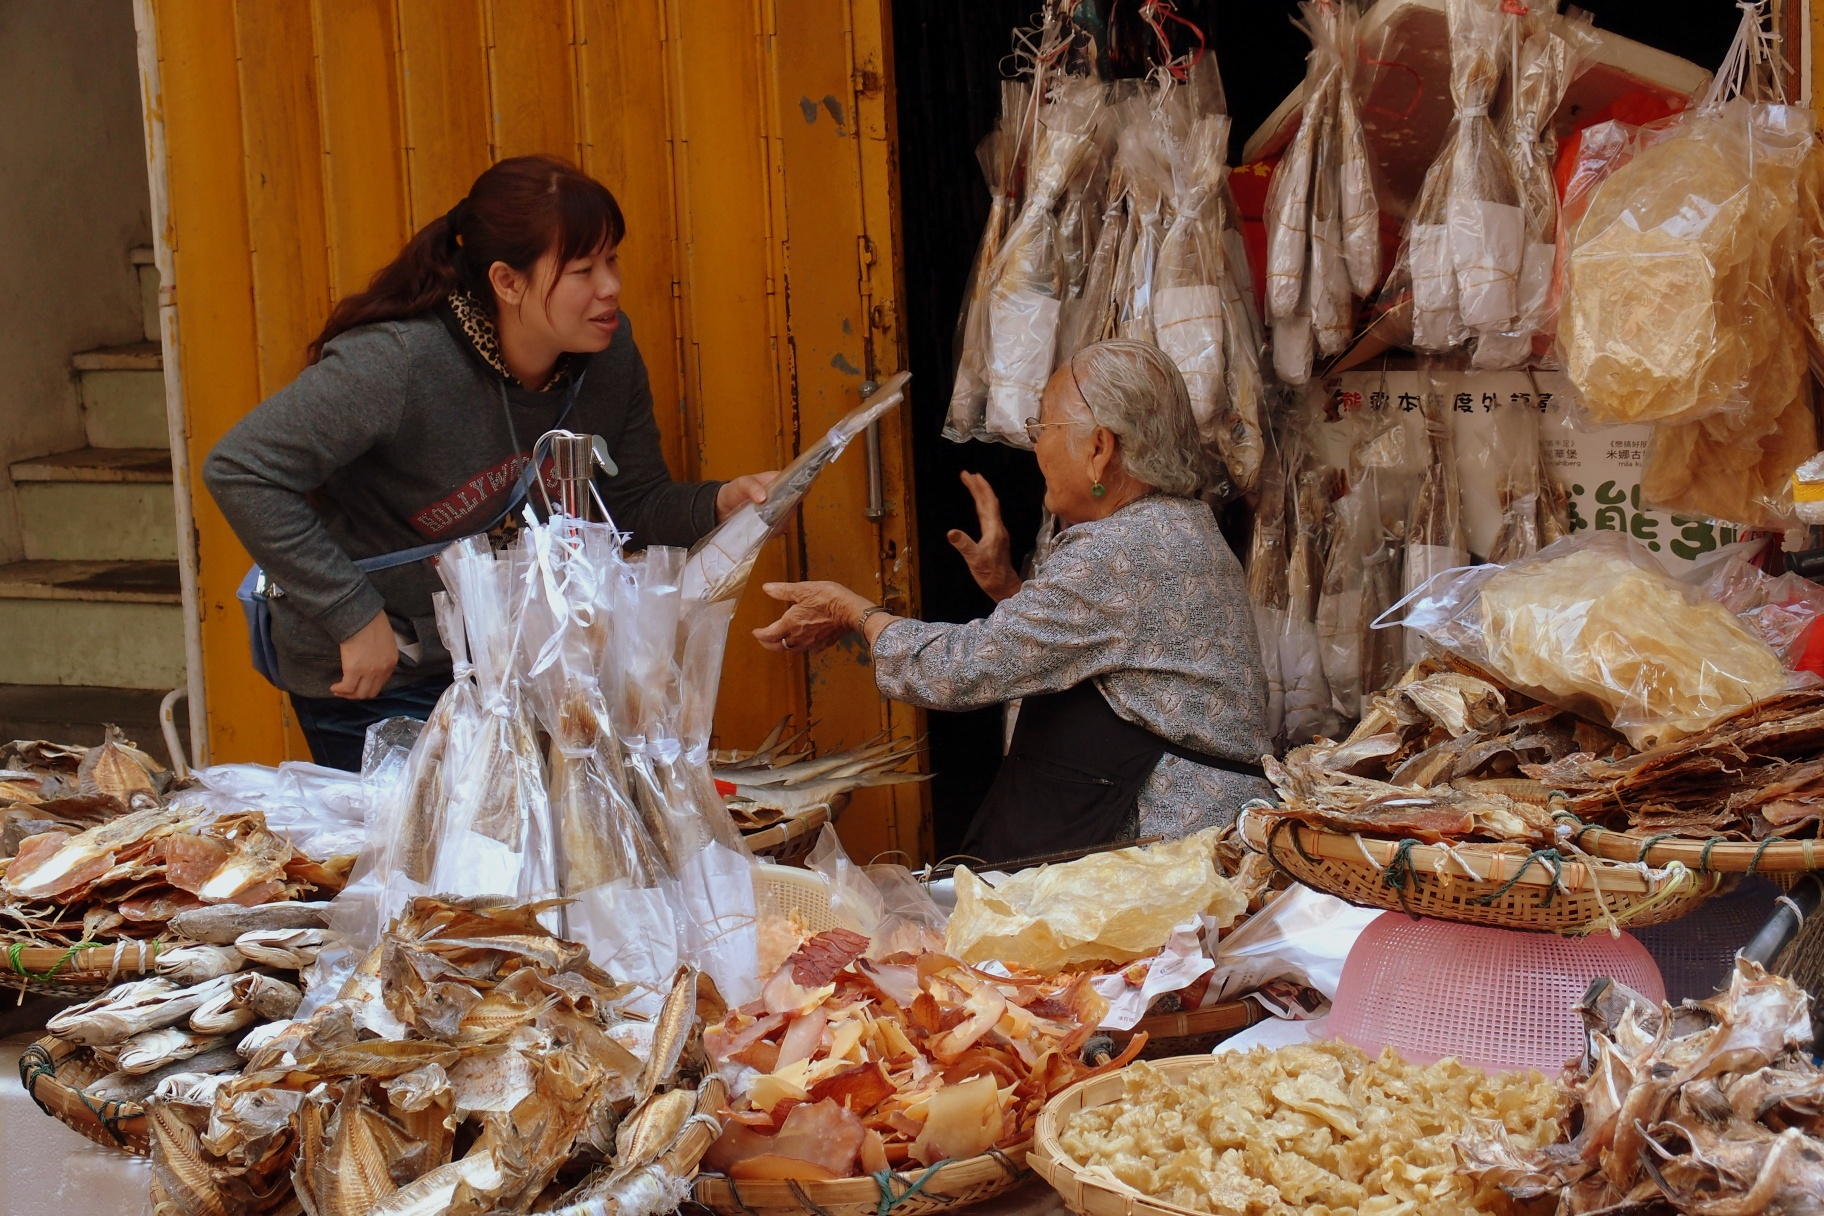 Selling dried fish to scrape a living on Cheung Chau